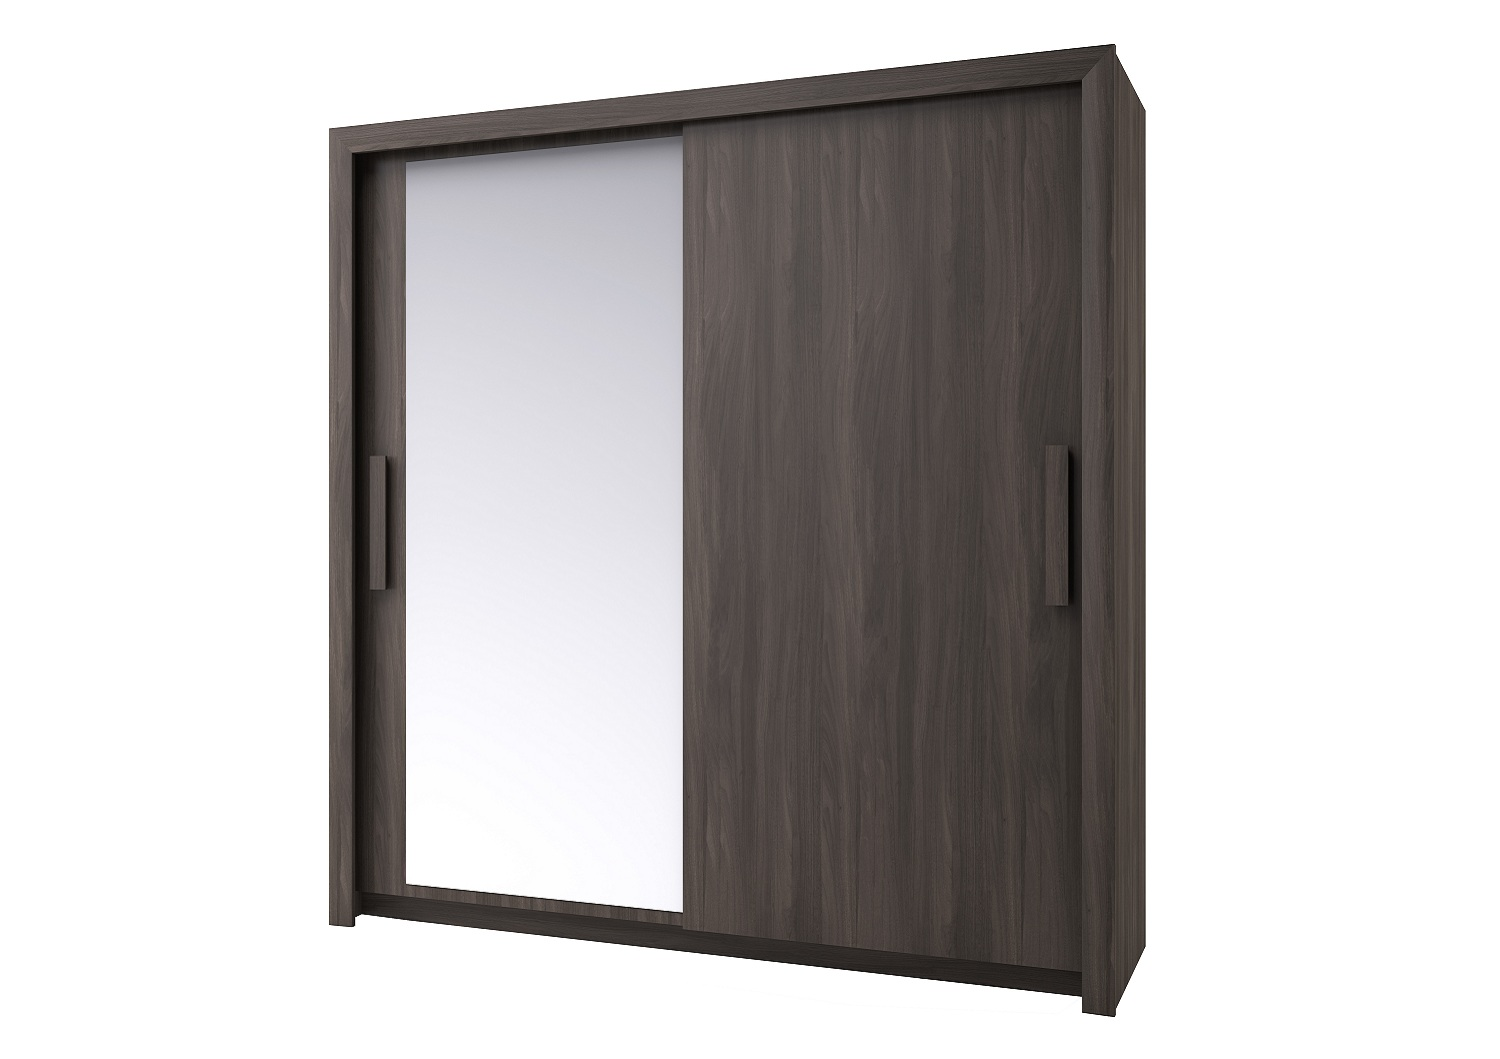 Bilrich Storage Furniture - Perfect Wardrobe 201cm Grey Elm